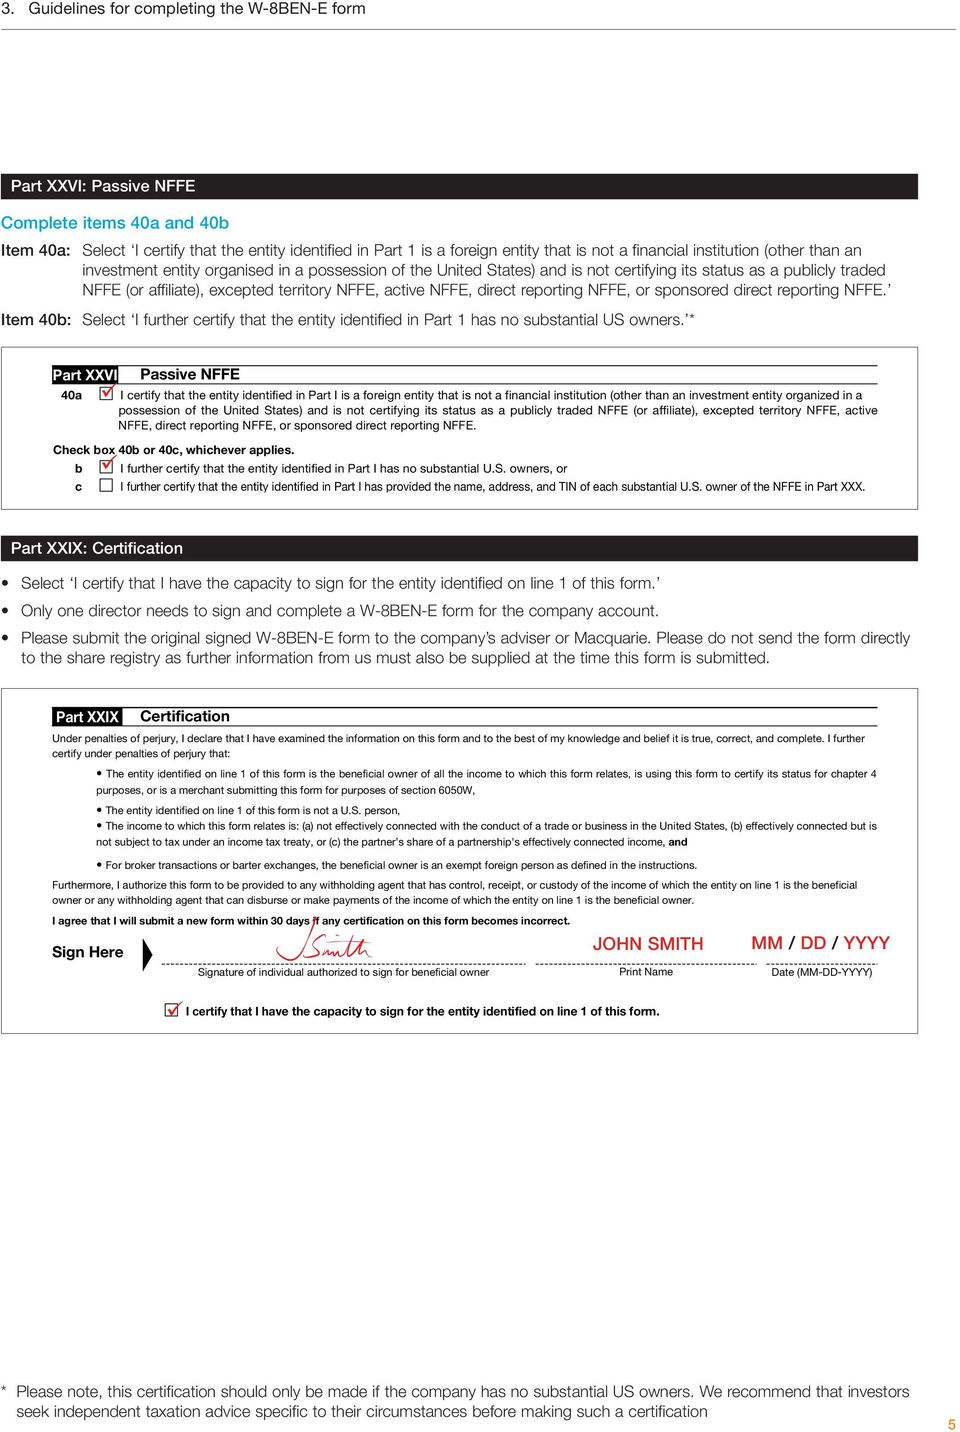 Optionsxpress Australia Instructions For Completing W 8ben